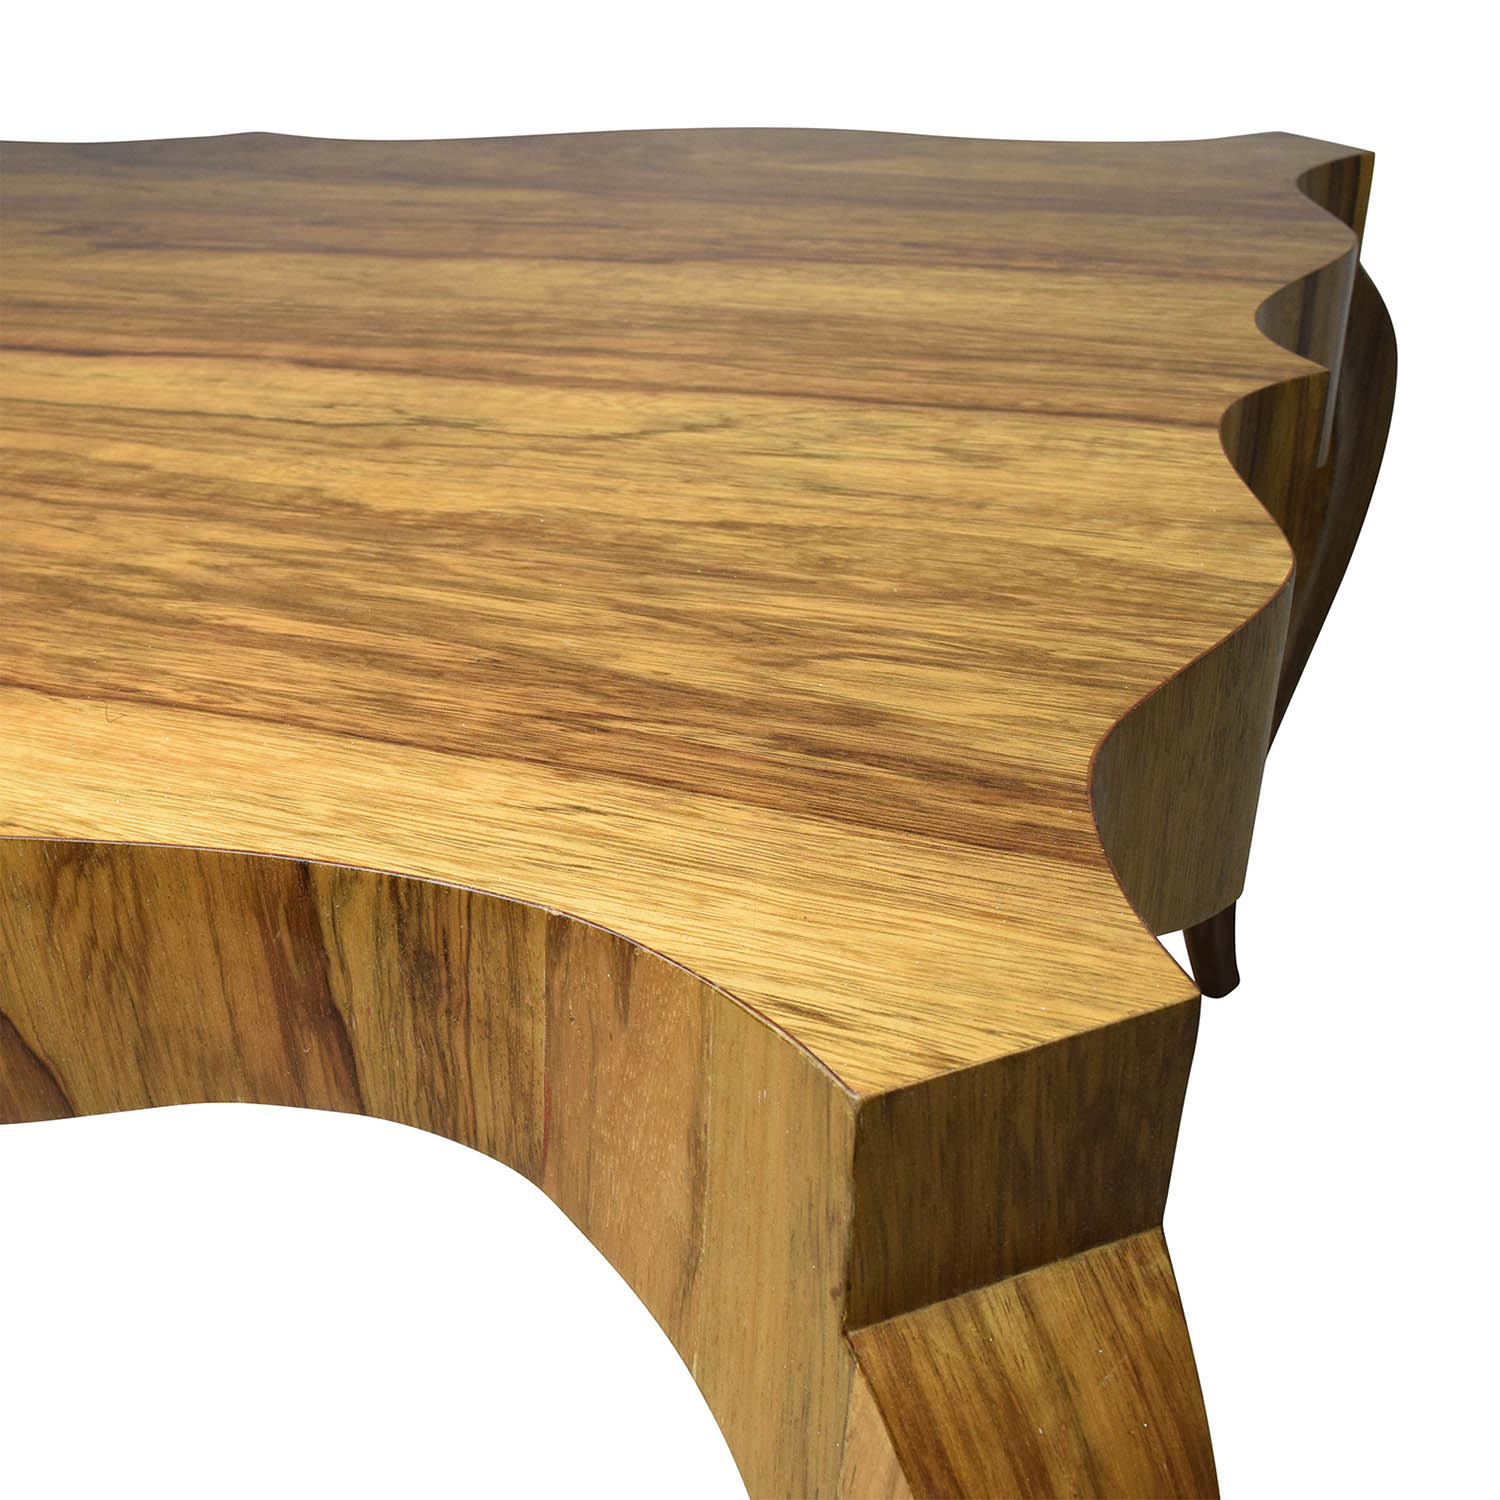 Theodore Alexander Keno Bros Theodore Alexander Keno Bros The Fine Point II Coffee Table Coffee Tables